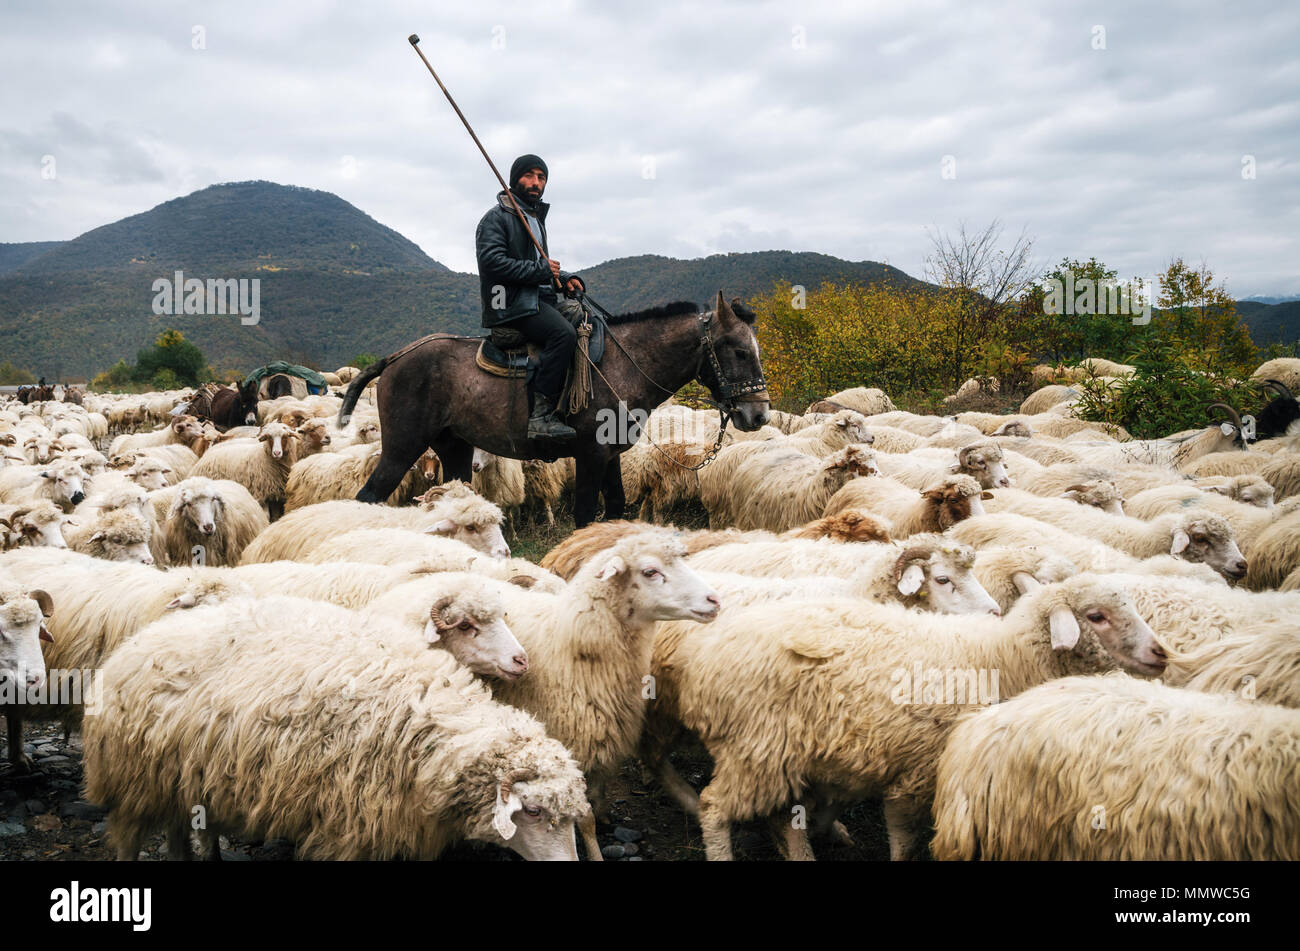 Zhinvali village, Mtskheta-Mtianeti, Georgia - October 21, 2016: Shepherd with crook riding a horse and herding a group of sheep - Stock Image